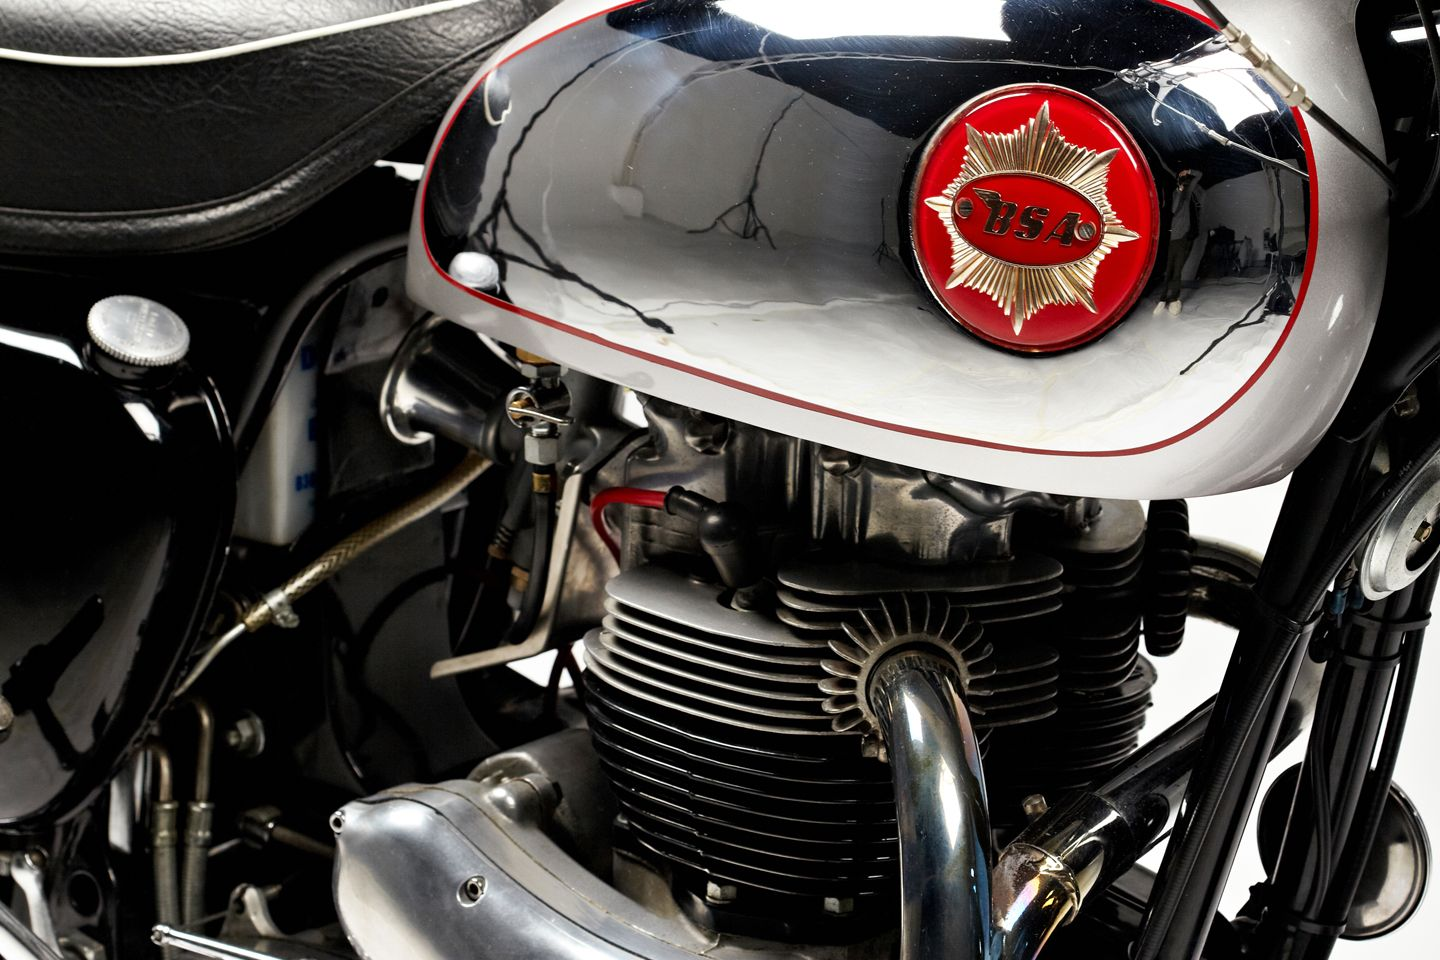 BSA Rocket Gold Star Replica - Albion Motorcycles | Cool Cars ...